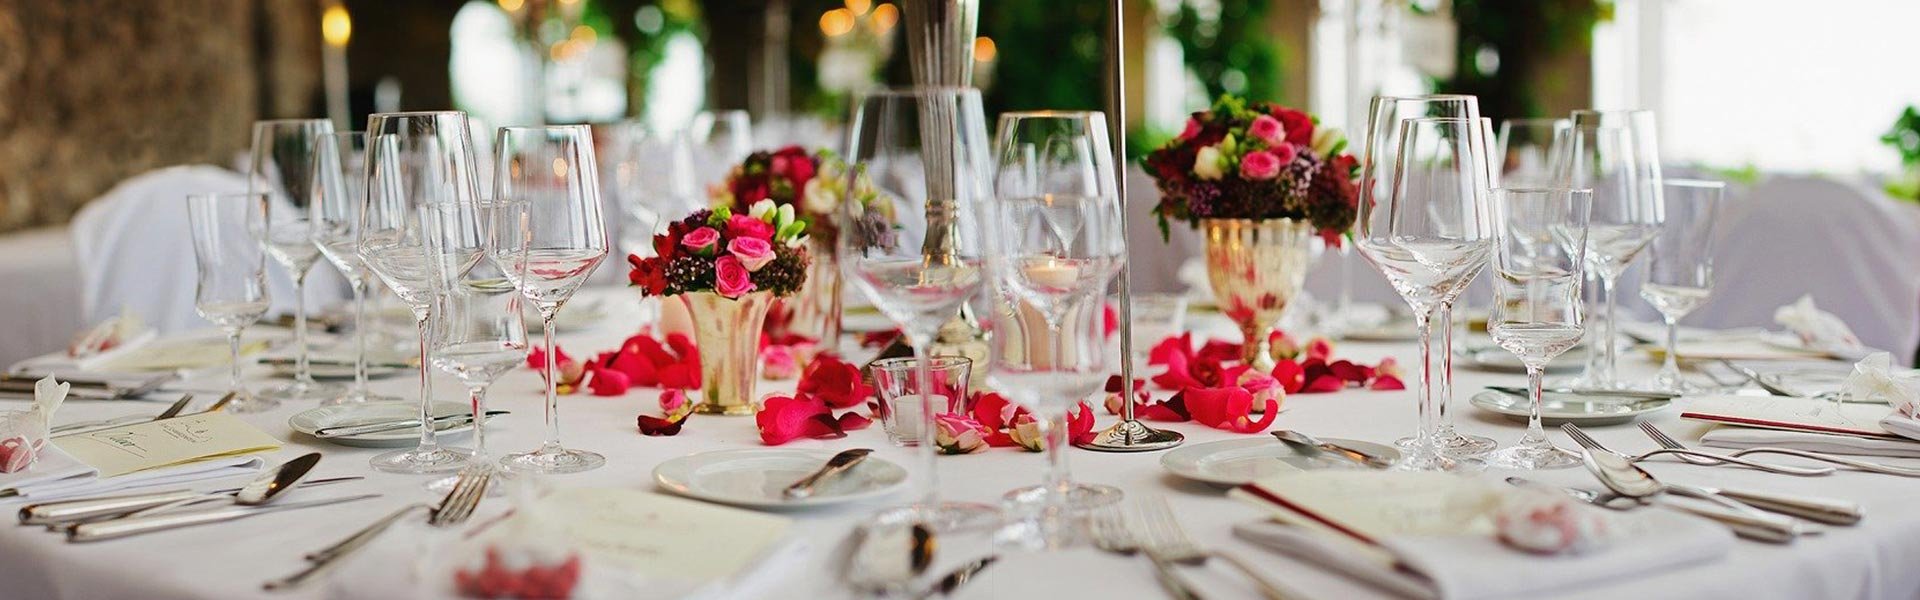 weddings-catering-header-1